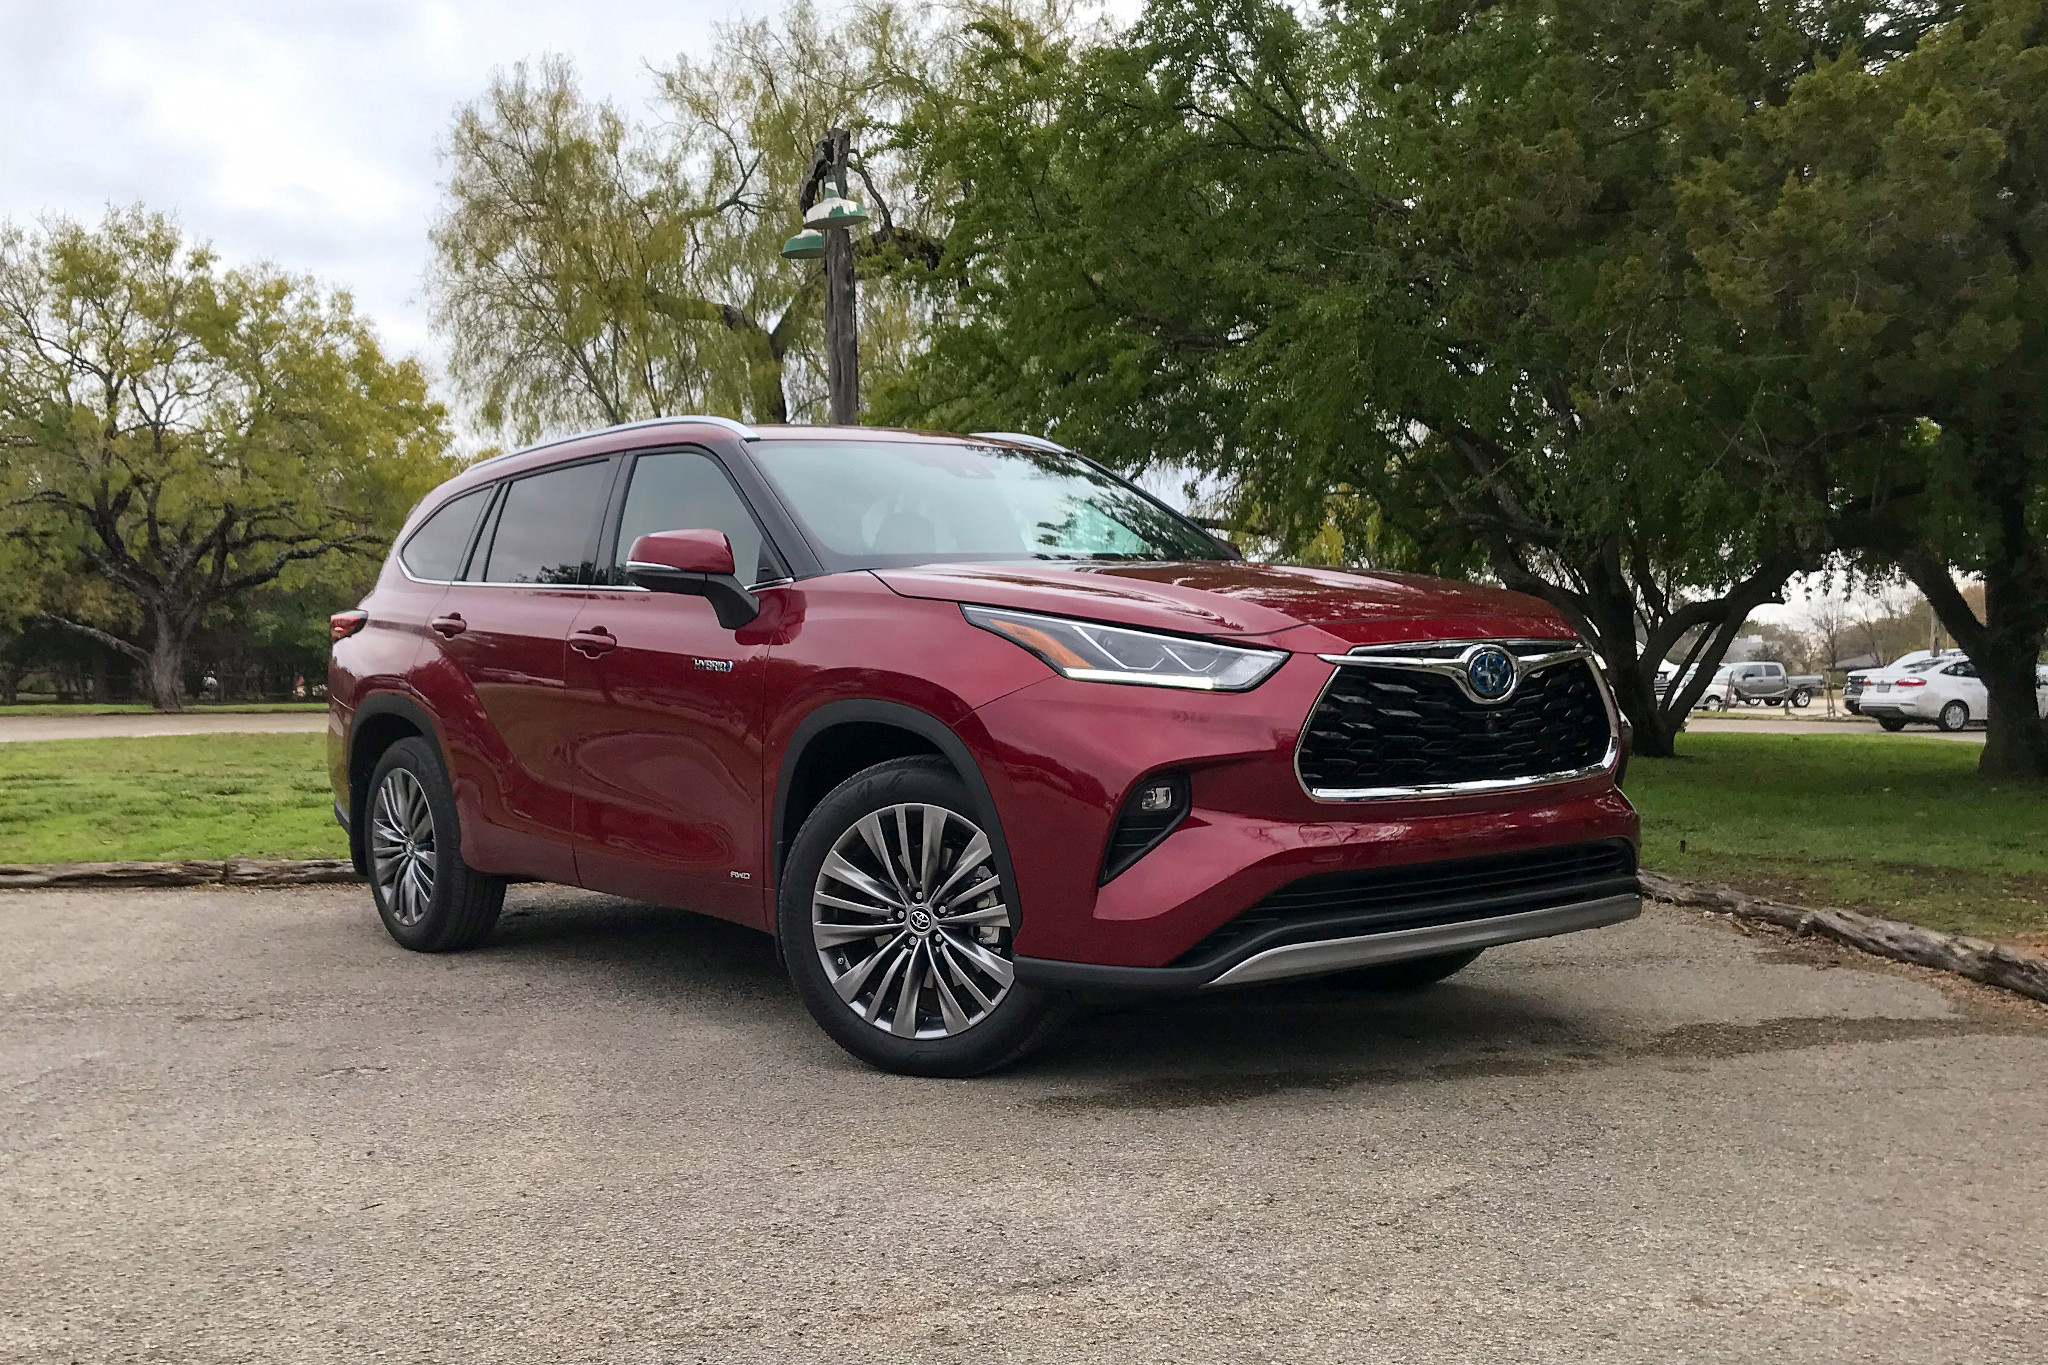 2020 Toyota Highlander: Everything You Need to Know